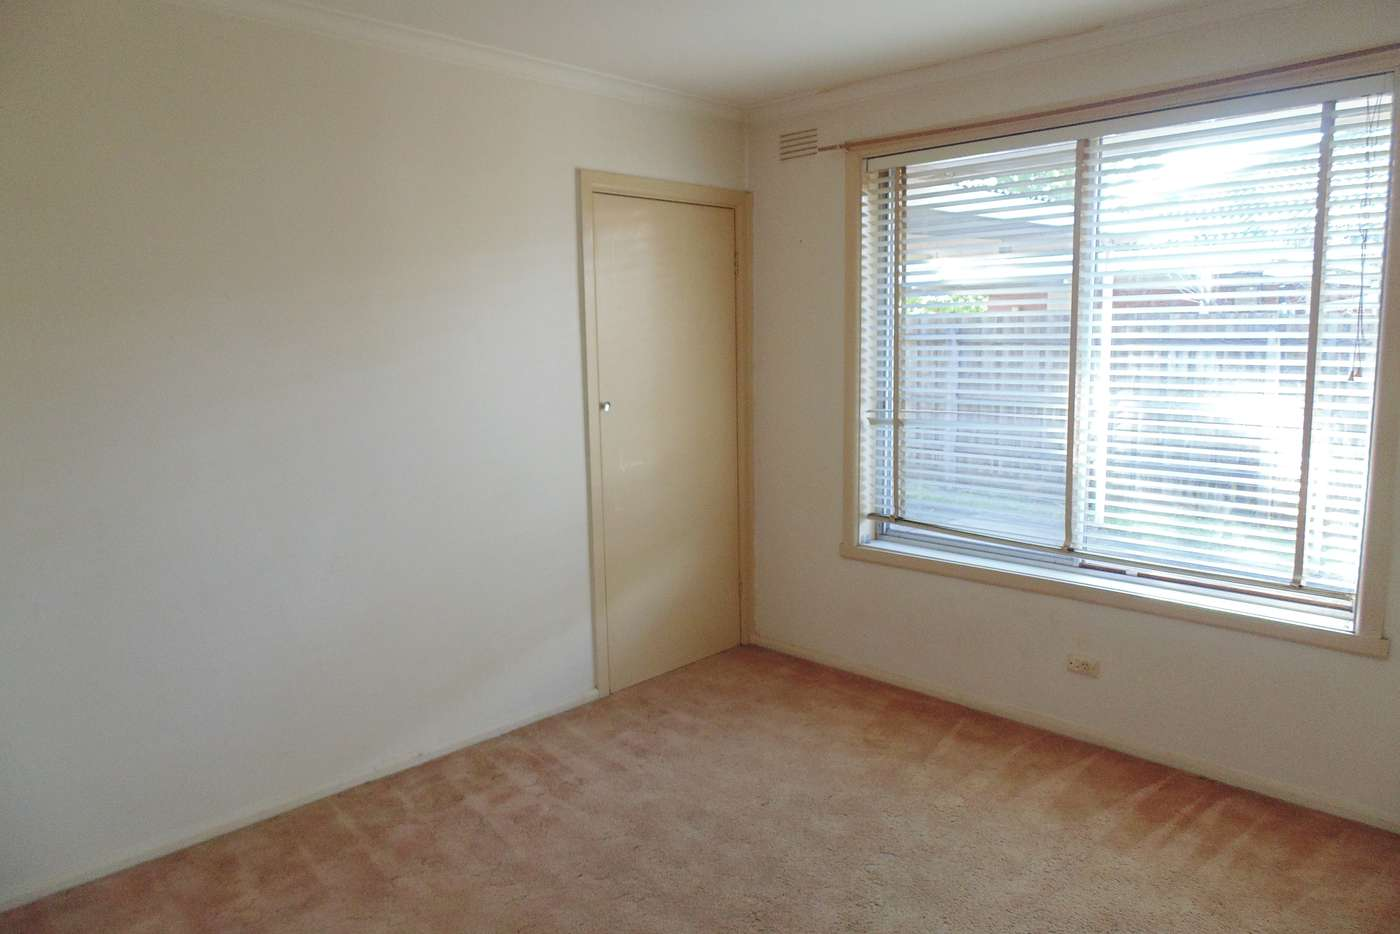 Sixth view of Homely unit listing, 2A Third Avenue, Dandenong North VIC 3175